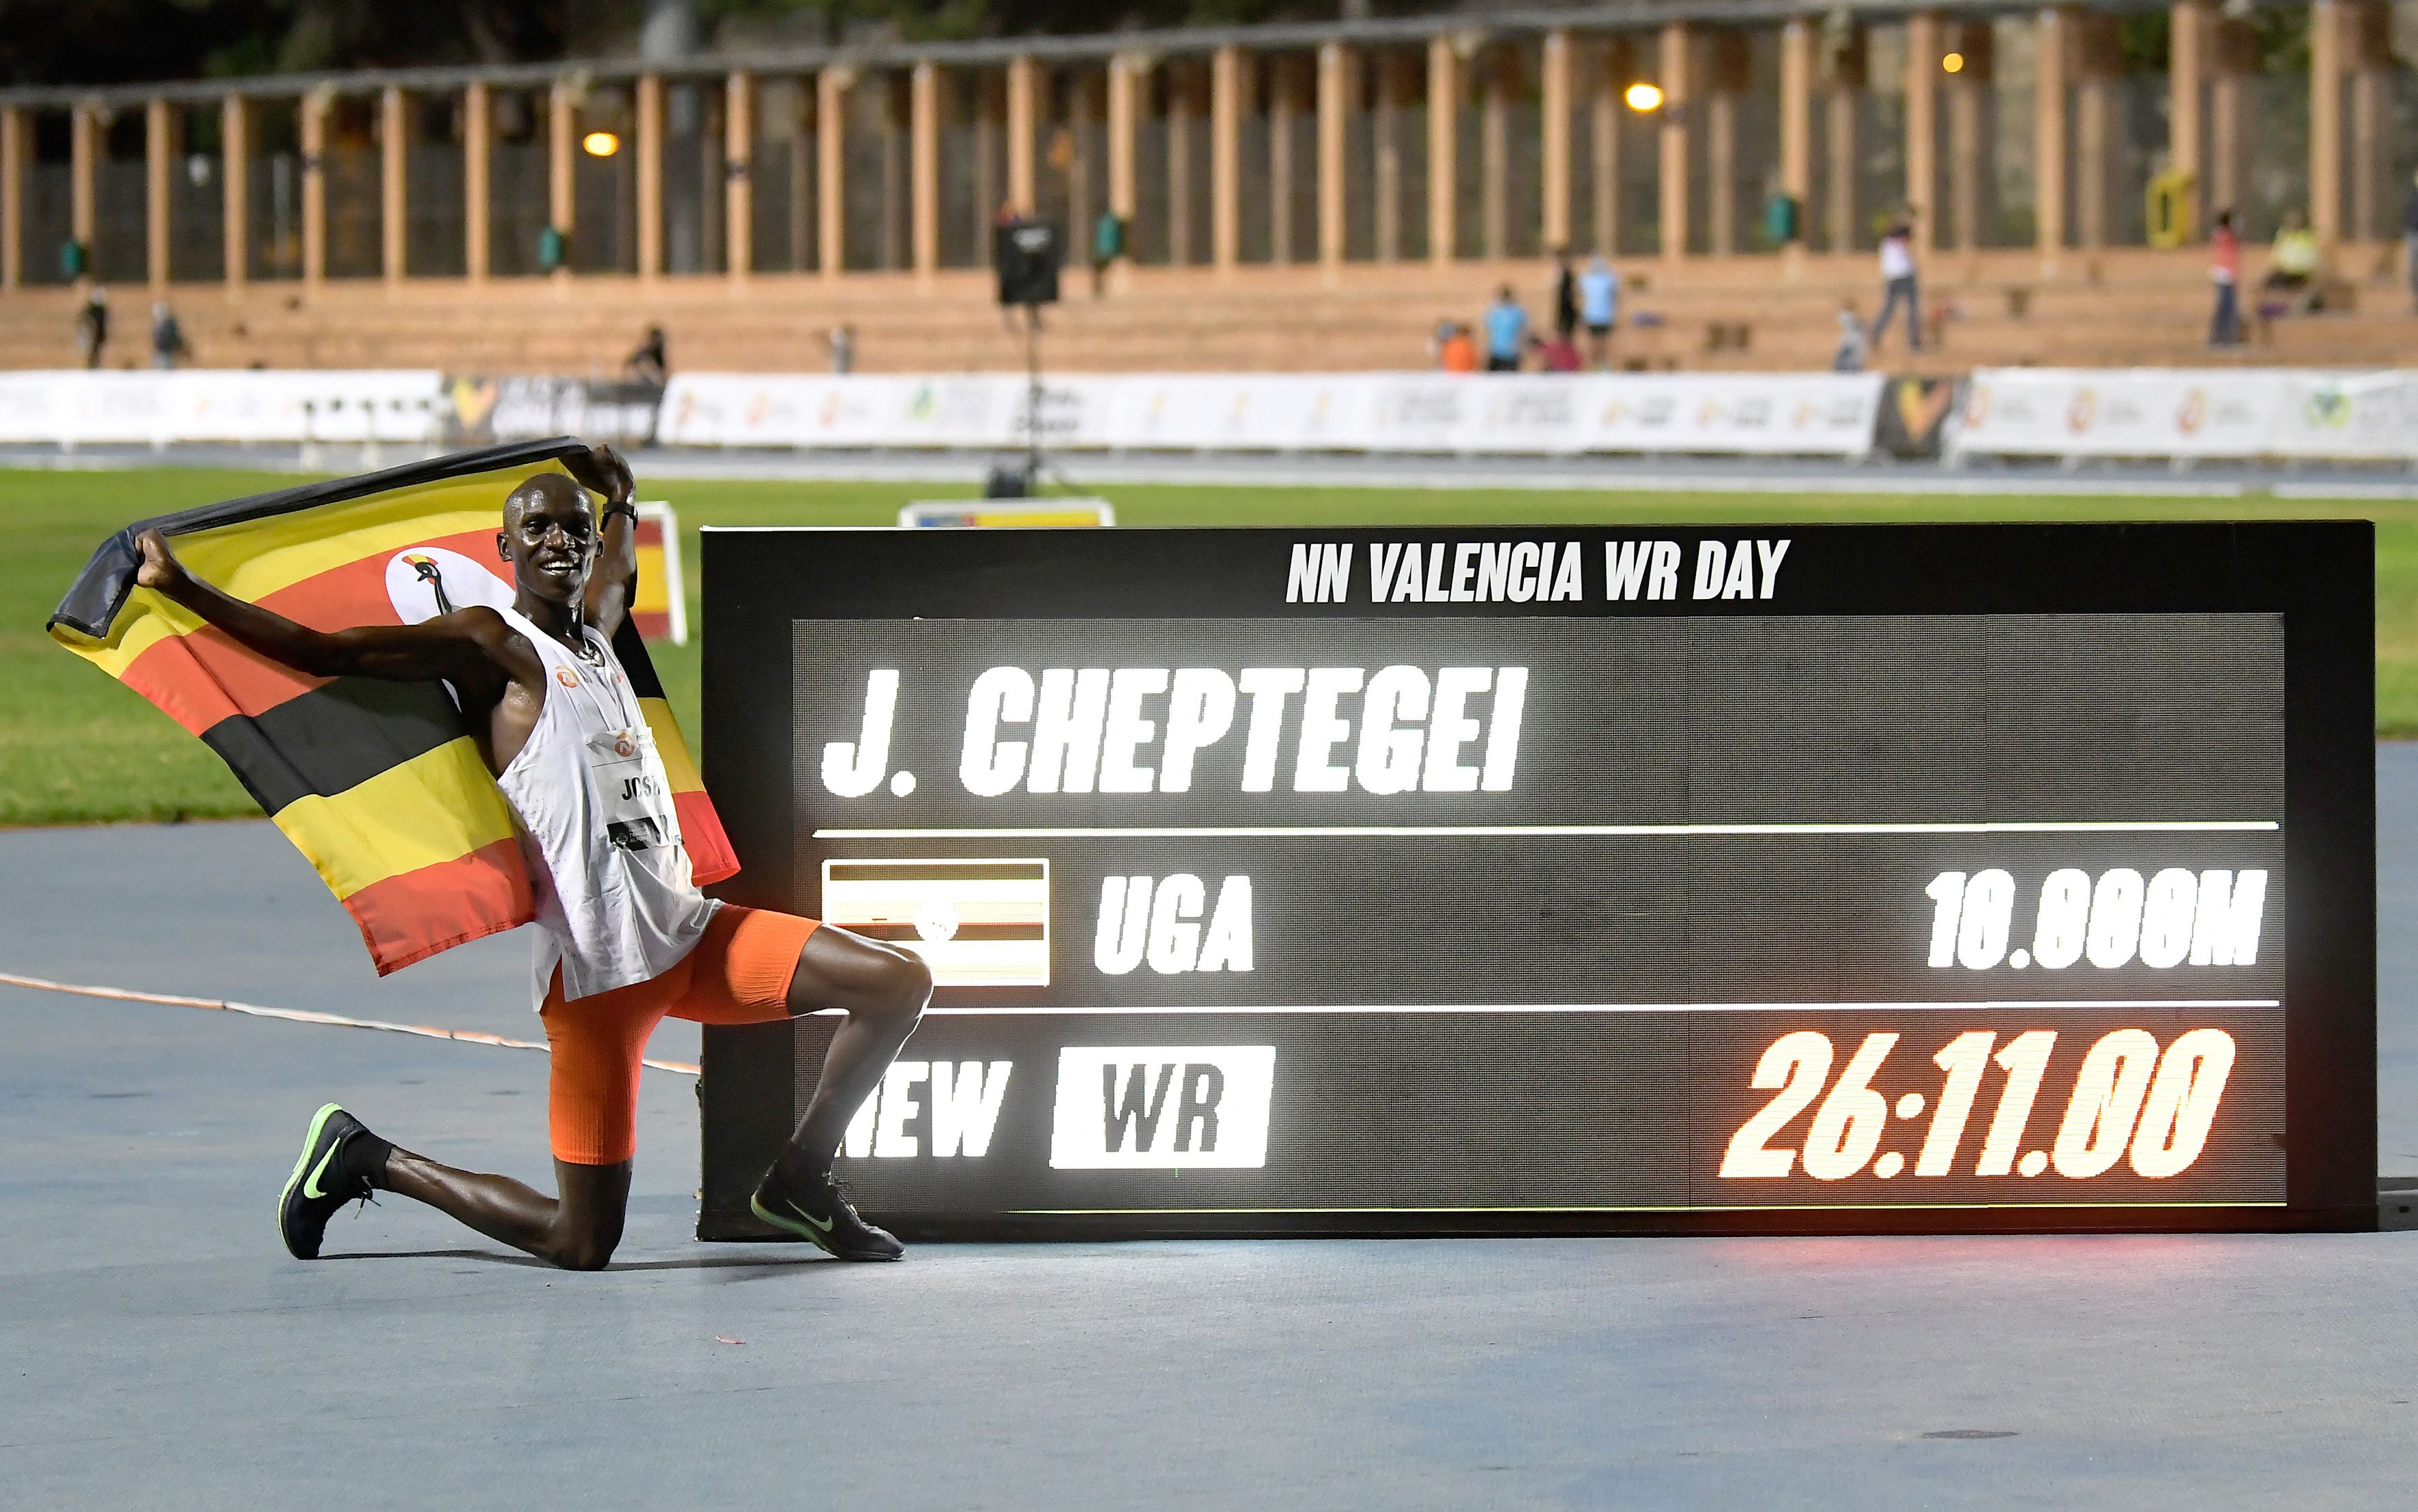 Joshua Cheptegei World Record | Cheptegei Breaks 10,000-Meter Record